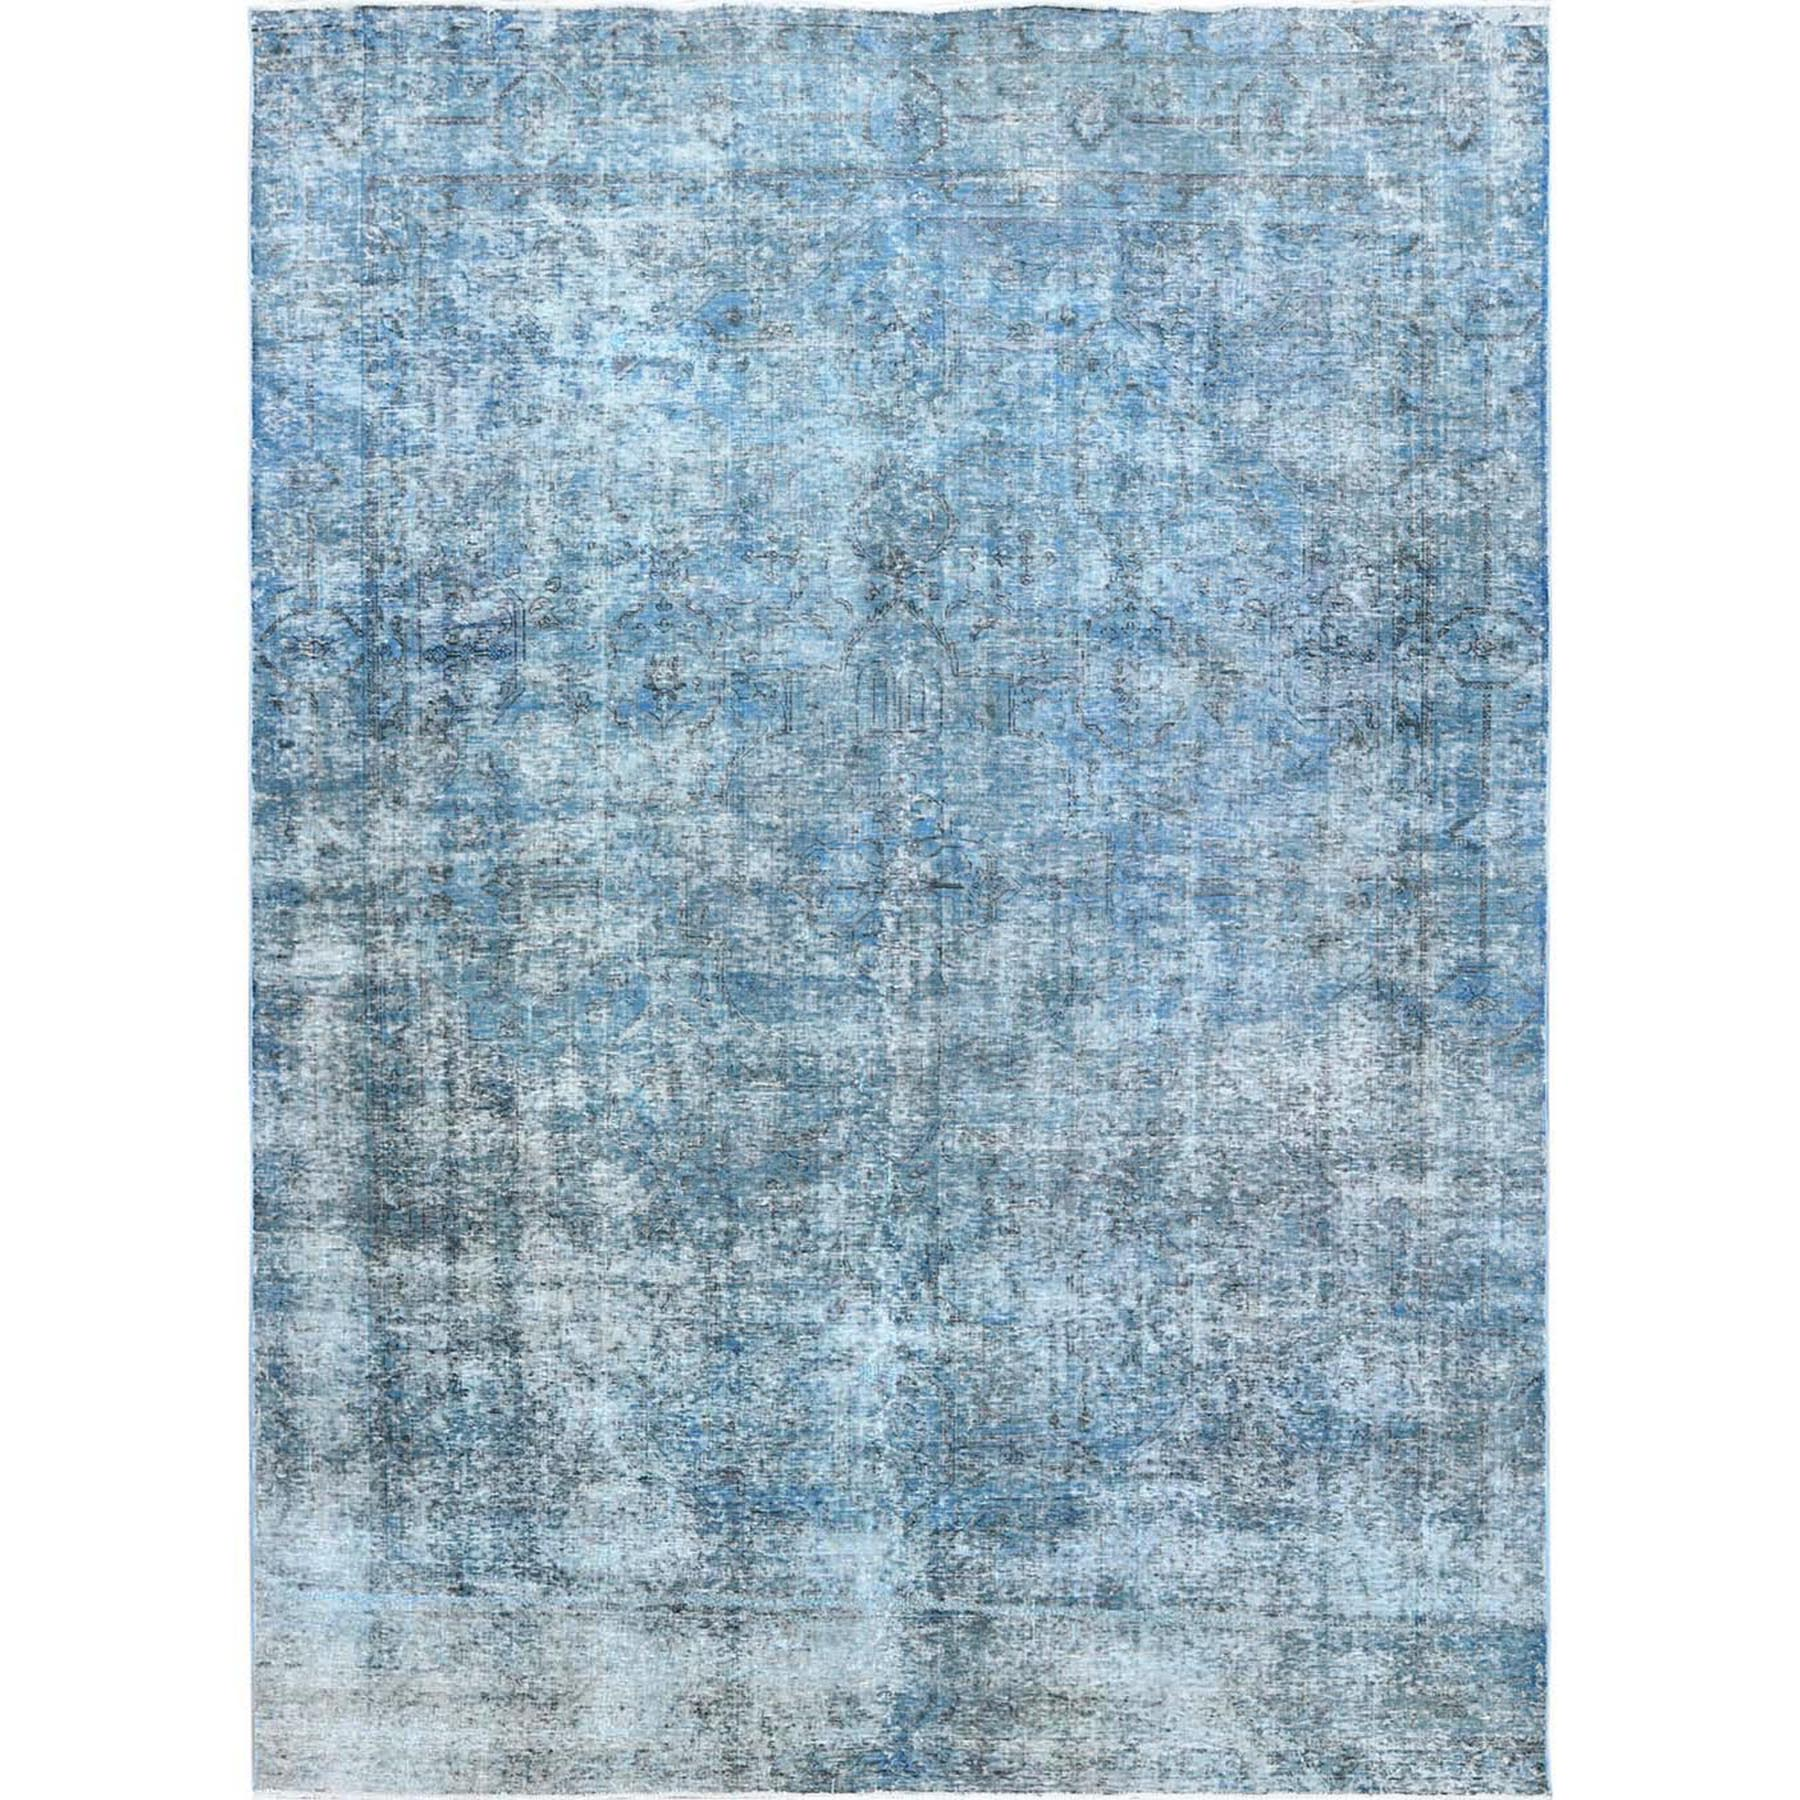 """9'0""""X12'4"""" Blue Clean Pure Wool Bohemian Worn Down Vintage Look Persian Tabriz All Over Design Hand Knotted Oriental Rug moa60cbc"""